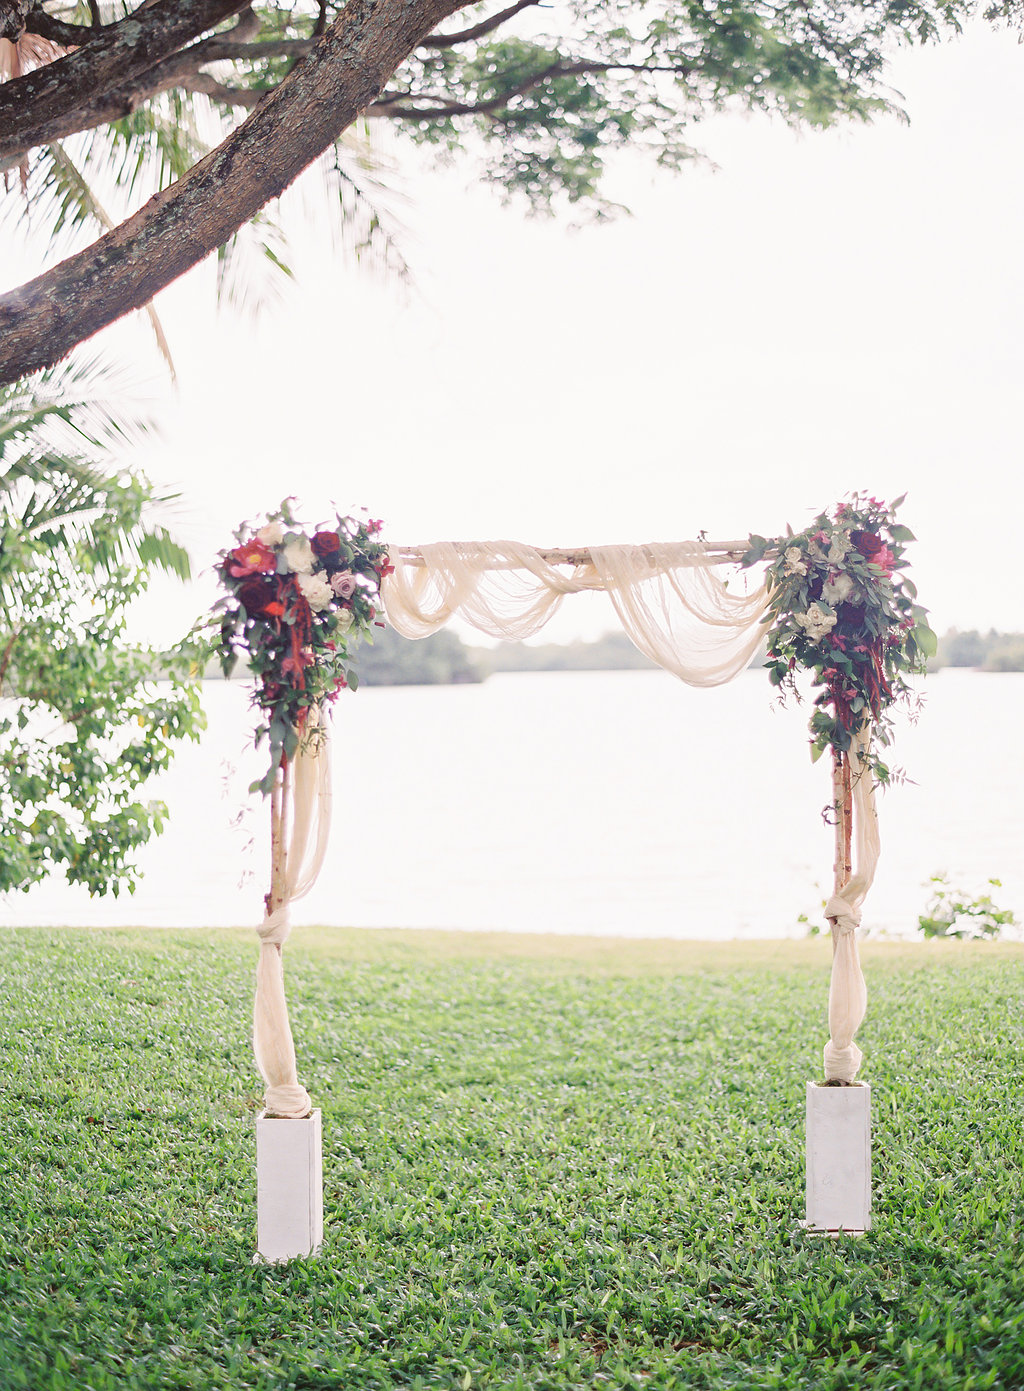 romantic berry and wine flowers with fabric draping on ceremony arch by Passion Roots | The Great Romance Photography | Oahu, Hawaii